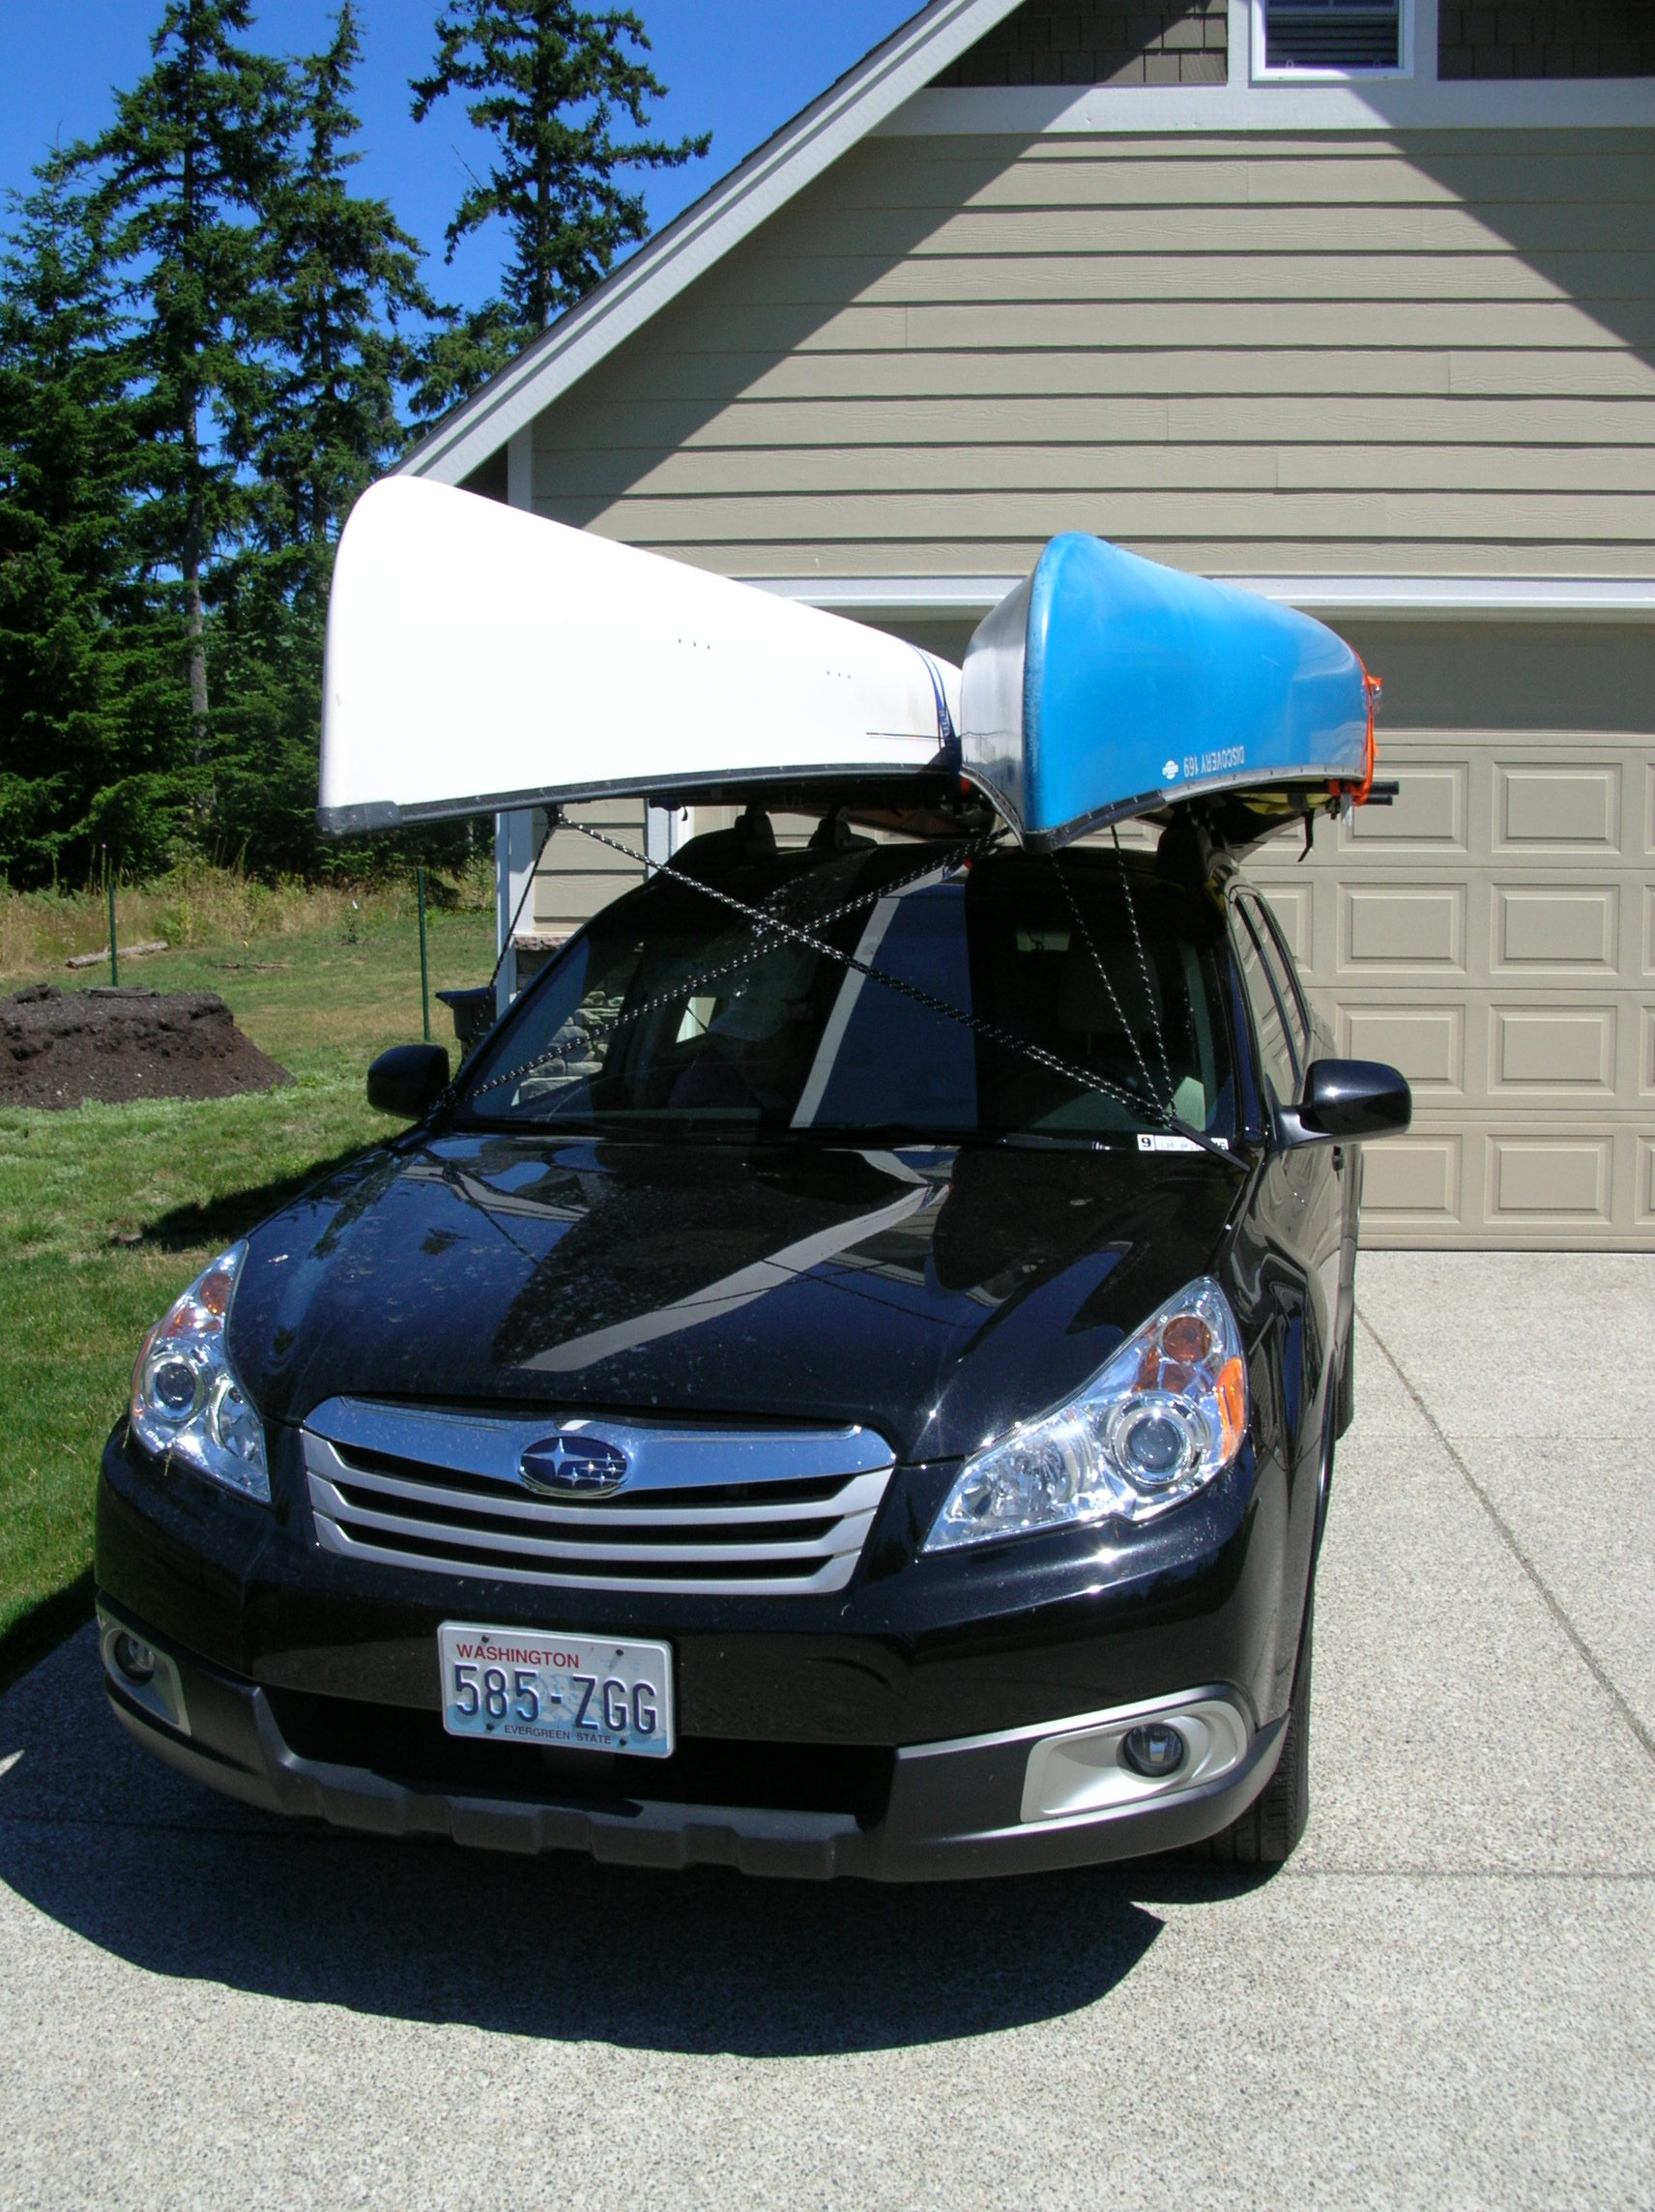 2011 roof rack and a large canoe